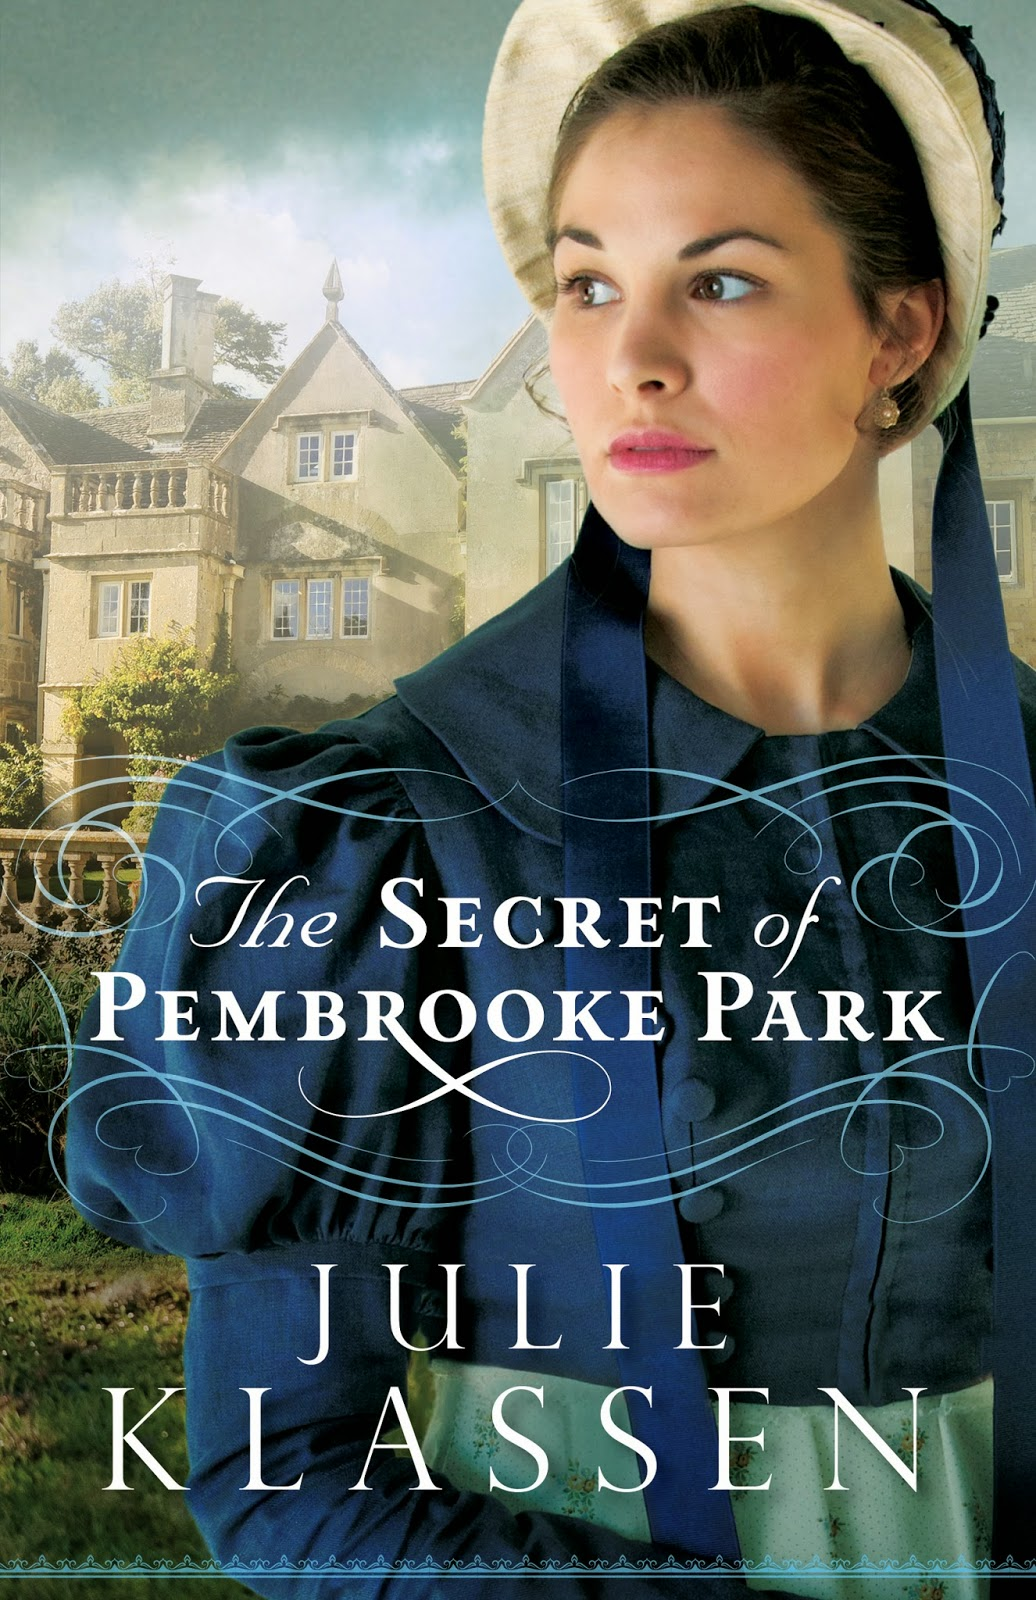 http://bakerpublishinggroup.com/books/the-secret-of-pembrooke-park/341830